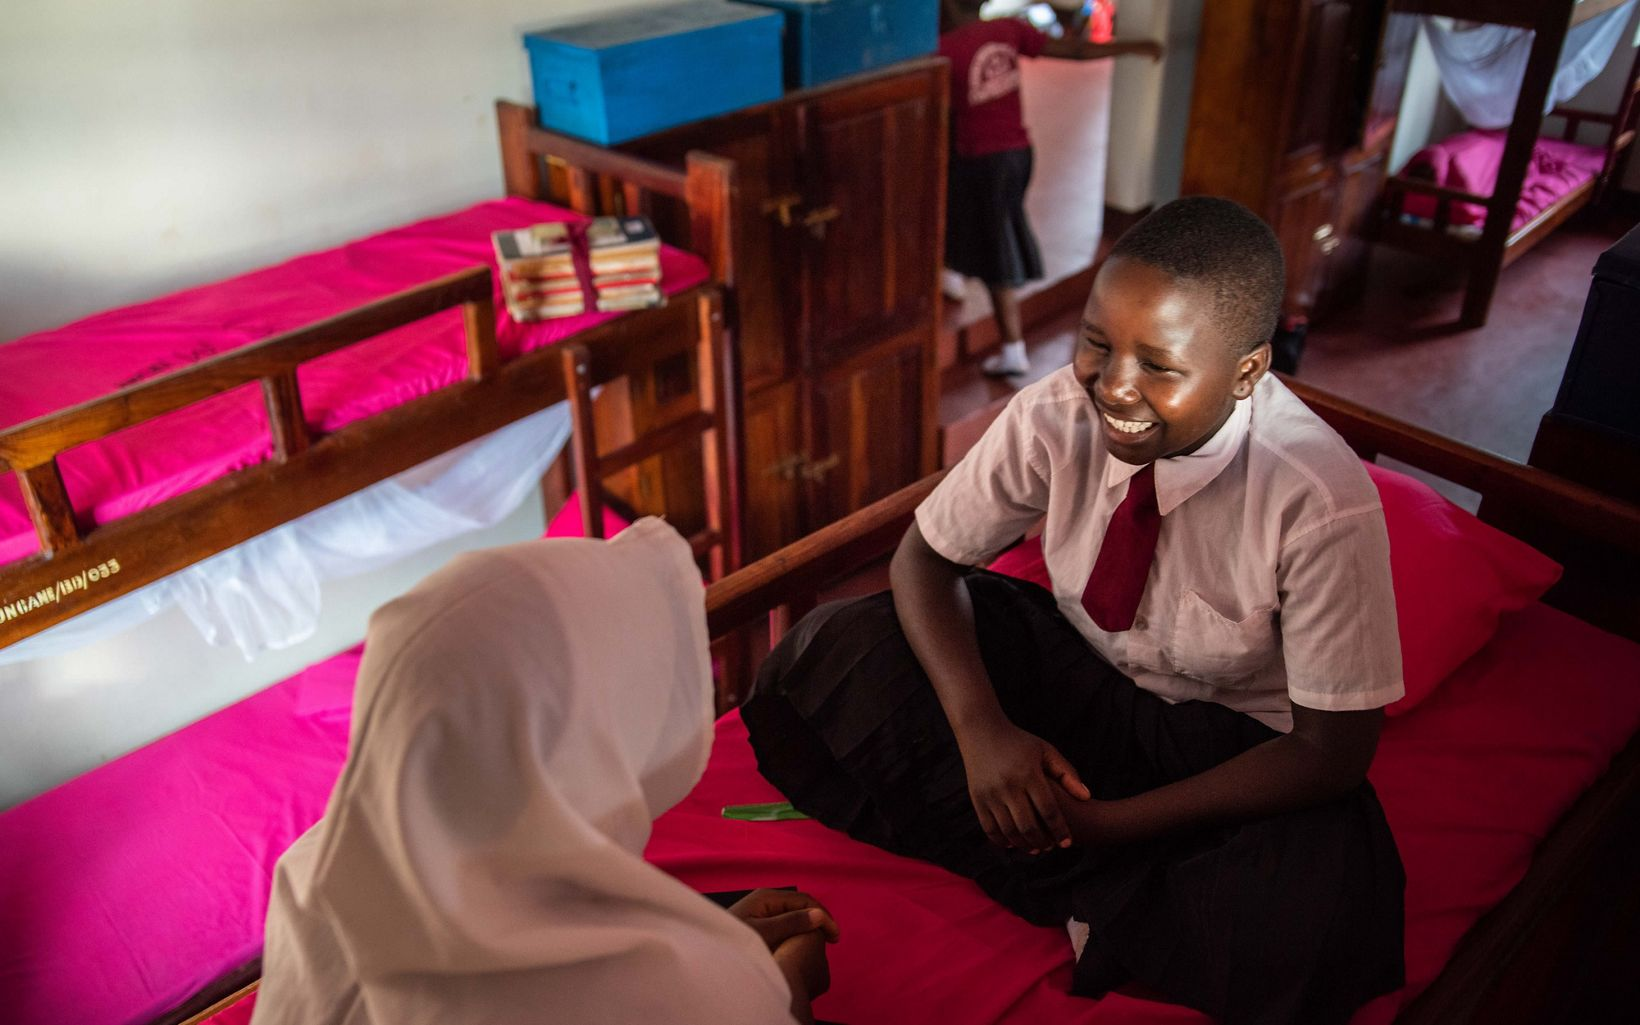 The new dorm at Lagosa Secondary School is providing girls with a safe place to stay and study.